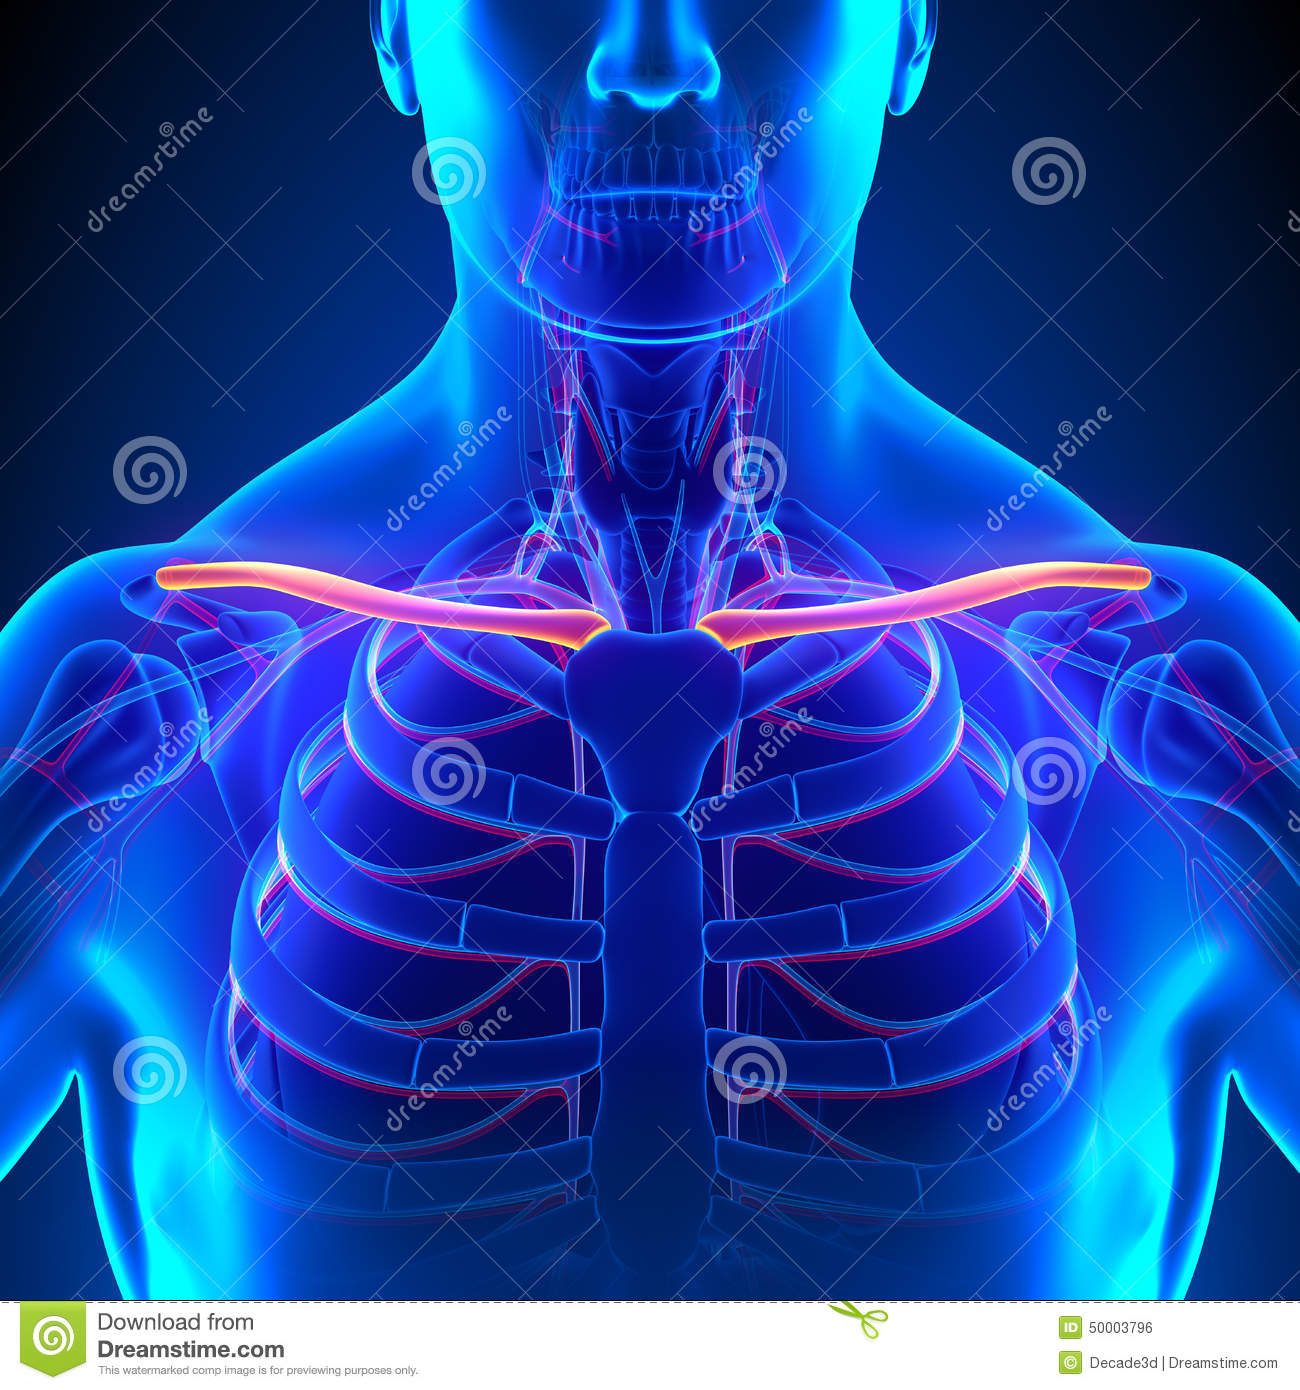 Clavicle Bone Anatomy With Circulatory System Stock Illustration ...